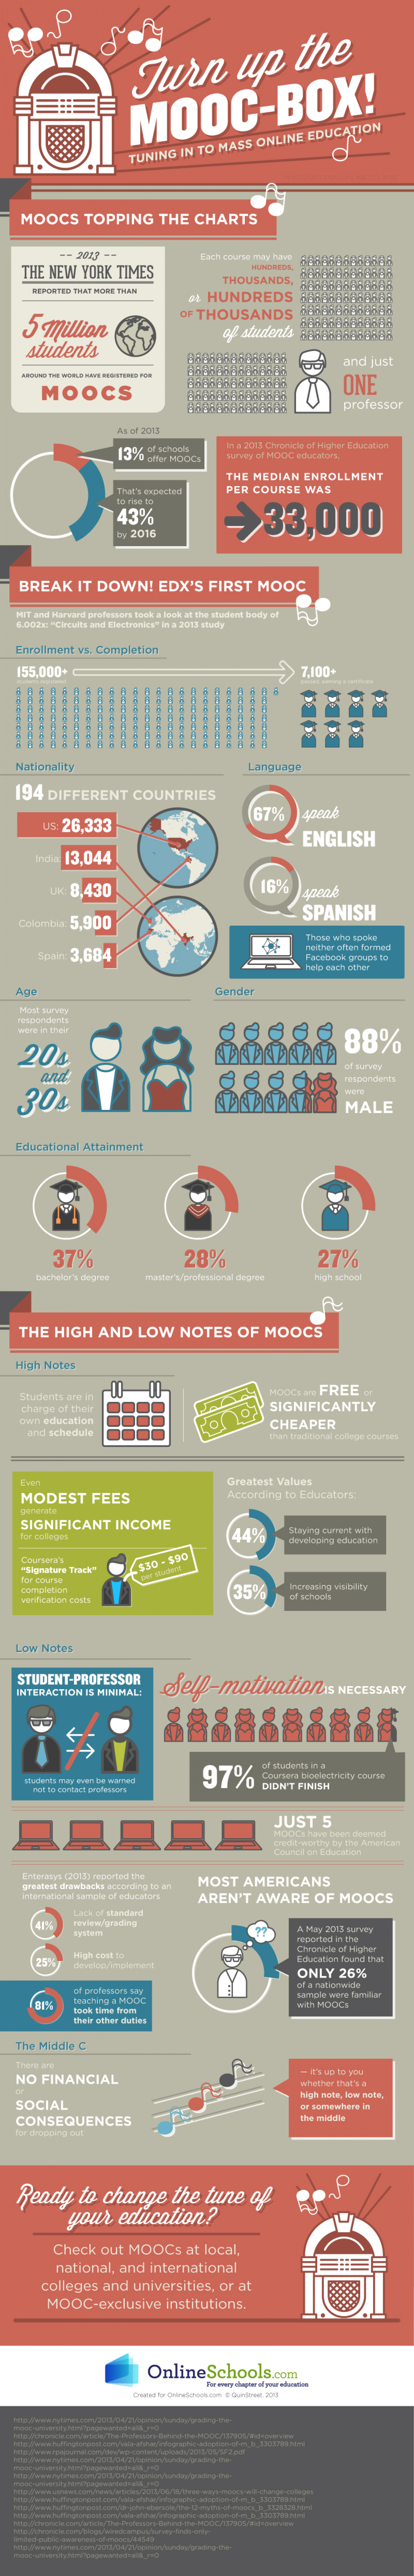 Turn up the MOOC-box! Infographic